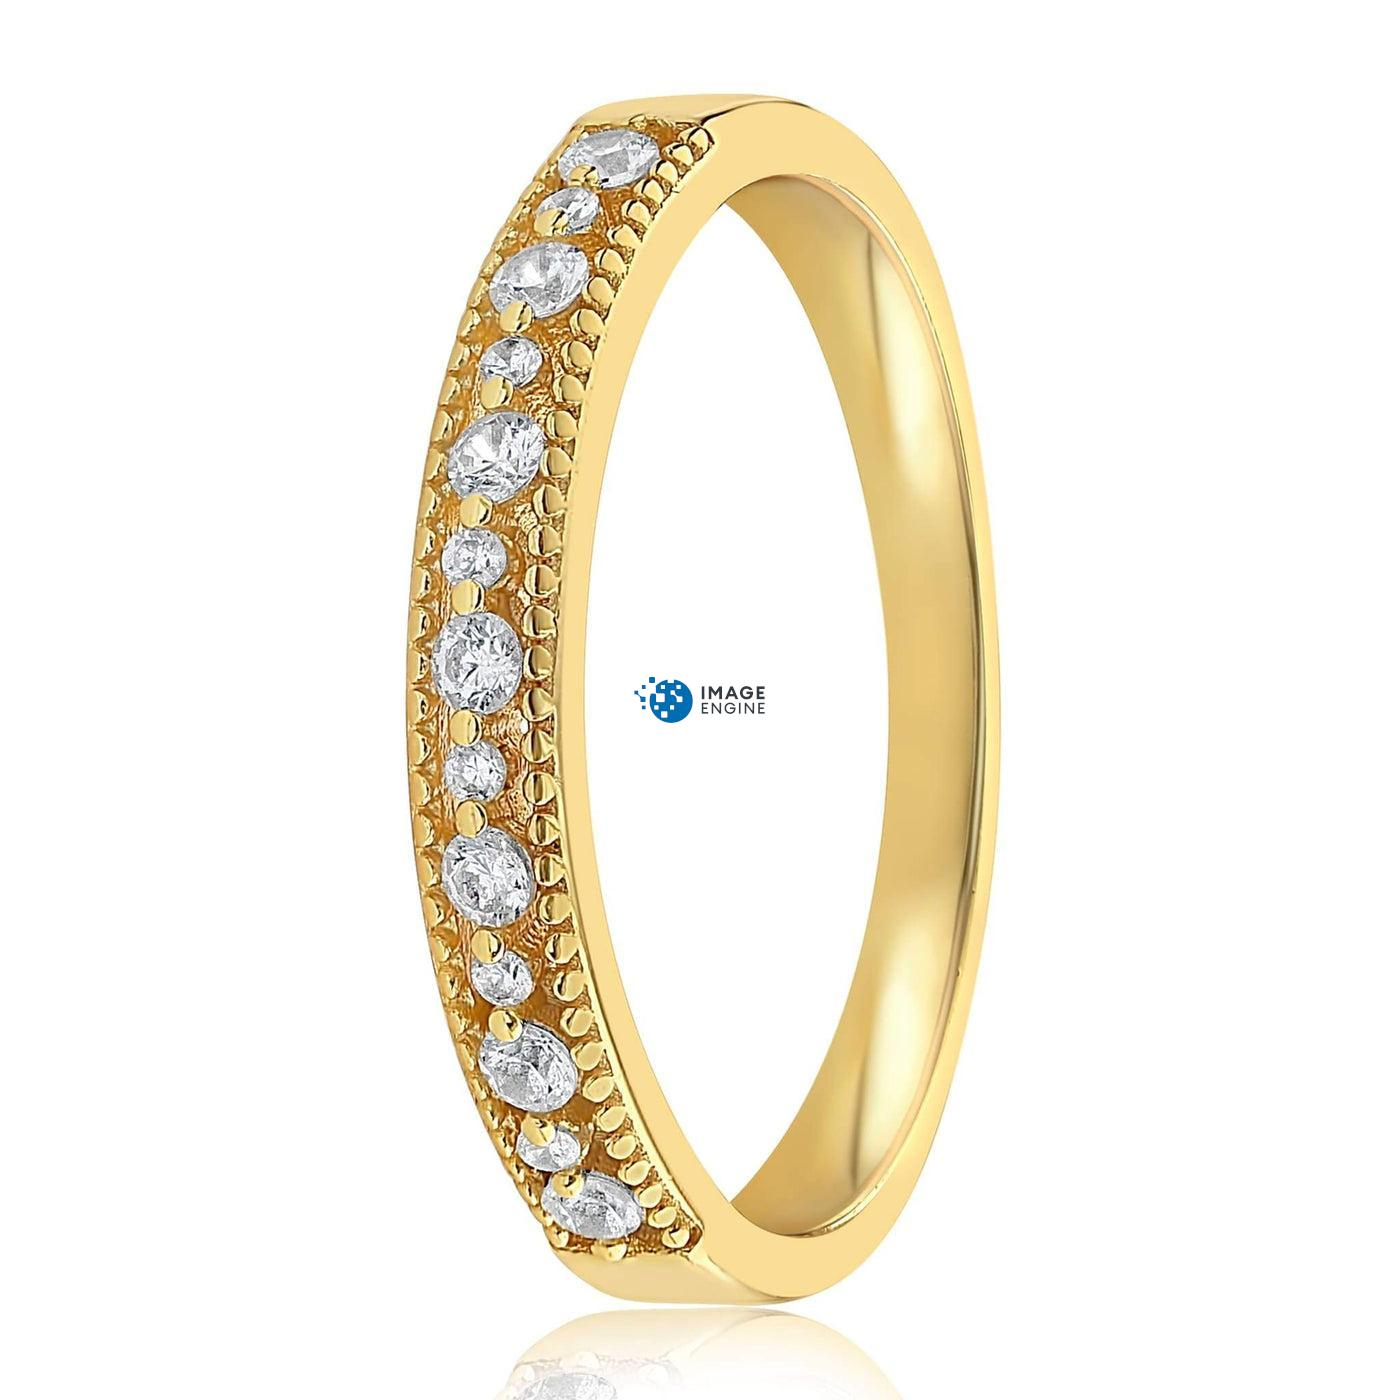 Joyce Layered Stack Ring - Side View - 18K Yellow Gold Vermeil